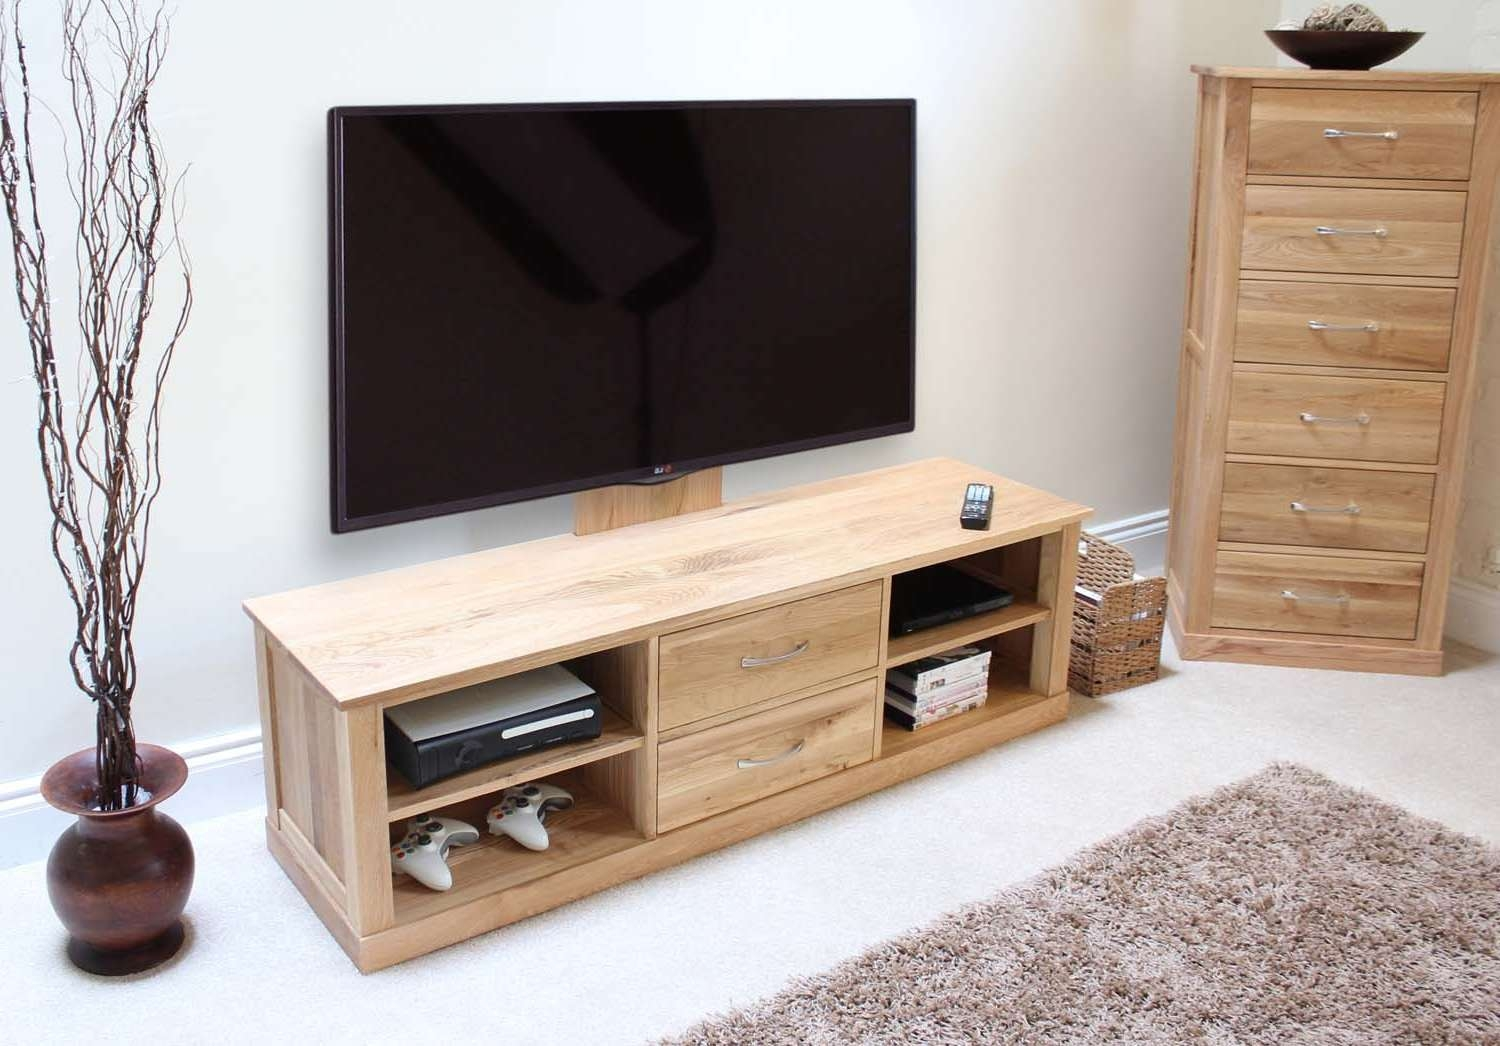 Modern Light Oak Tv Units | Solid Oak Furniture Online – Zurleys Uk Throughout Light Oak Tv Cabinets (View 10 of 20)